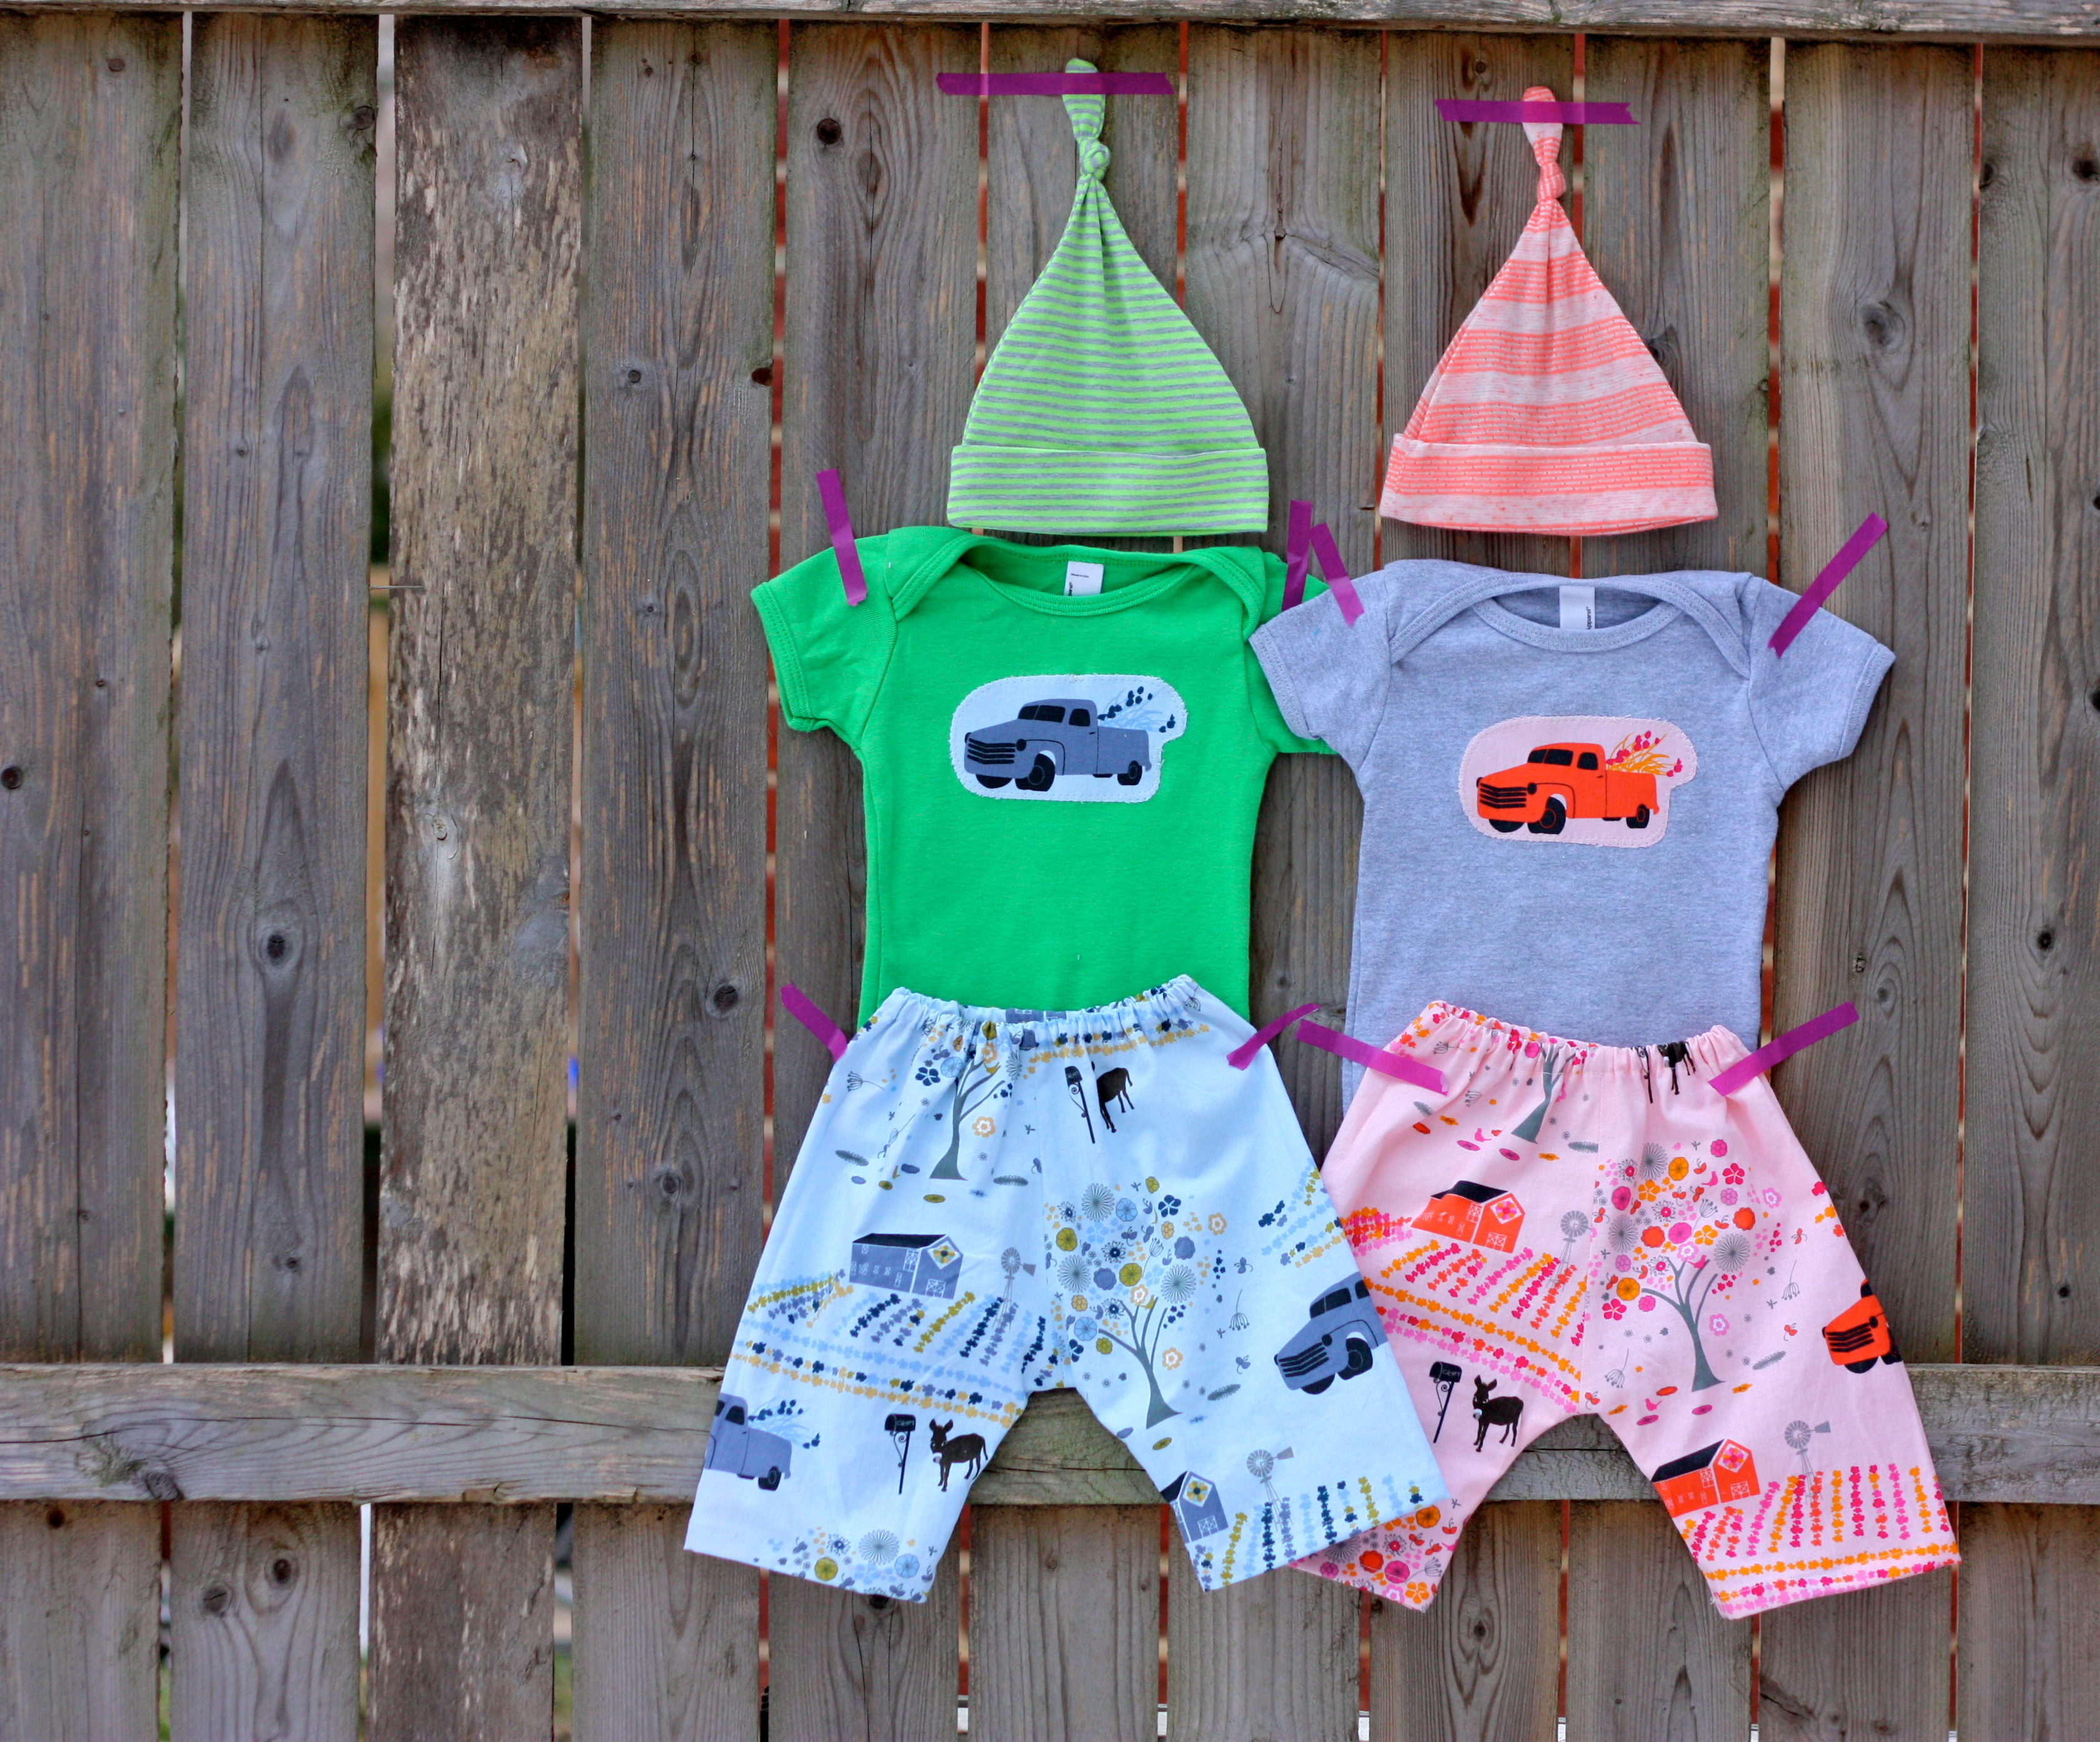 Making Baby Clothes Newest and Cutest Baby Clothing Collection by